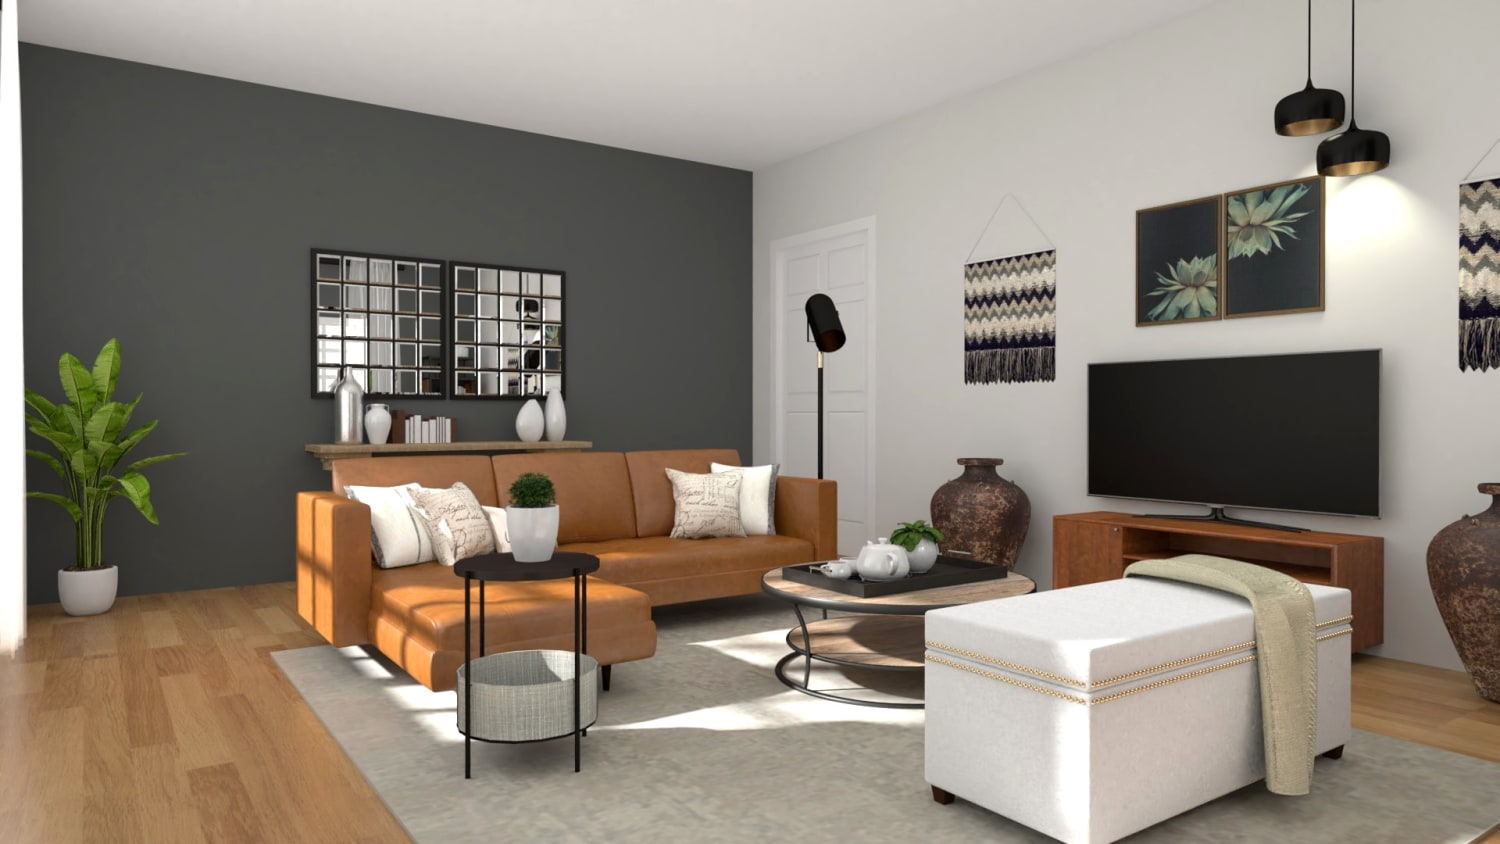 An Urban Mid-Century Living Room with Warm Accents Design By Spacejoy